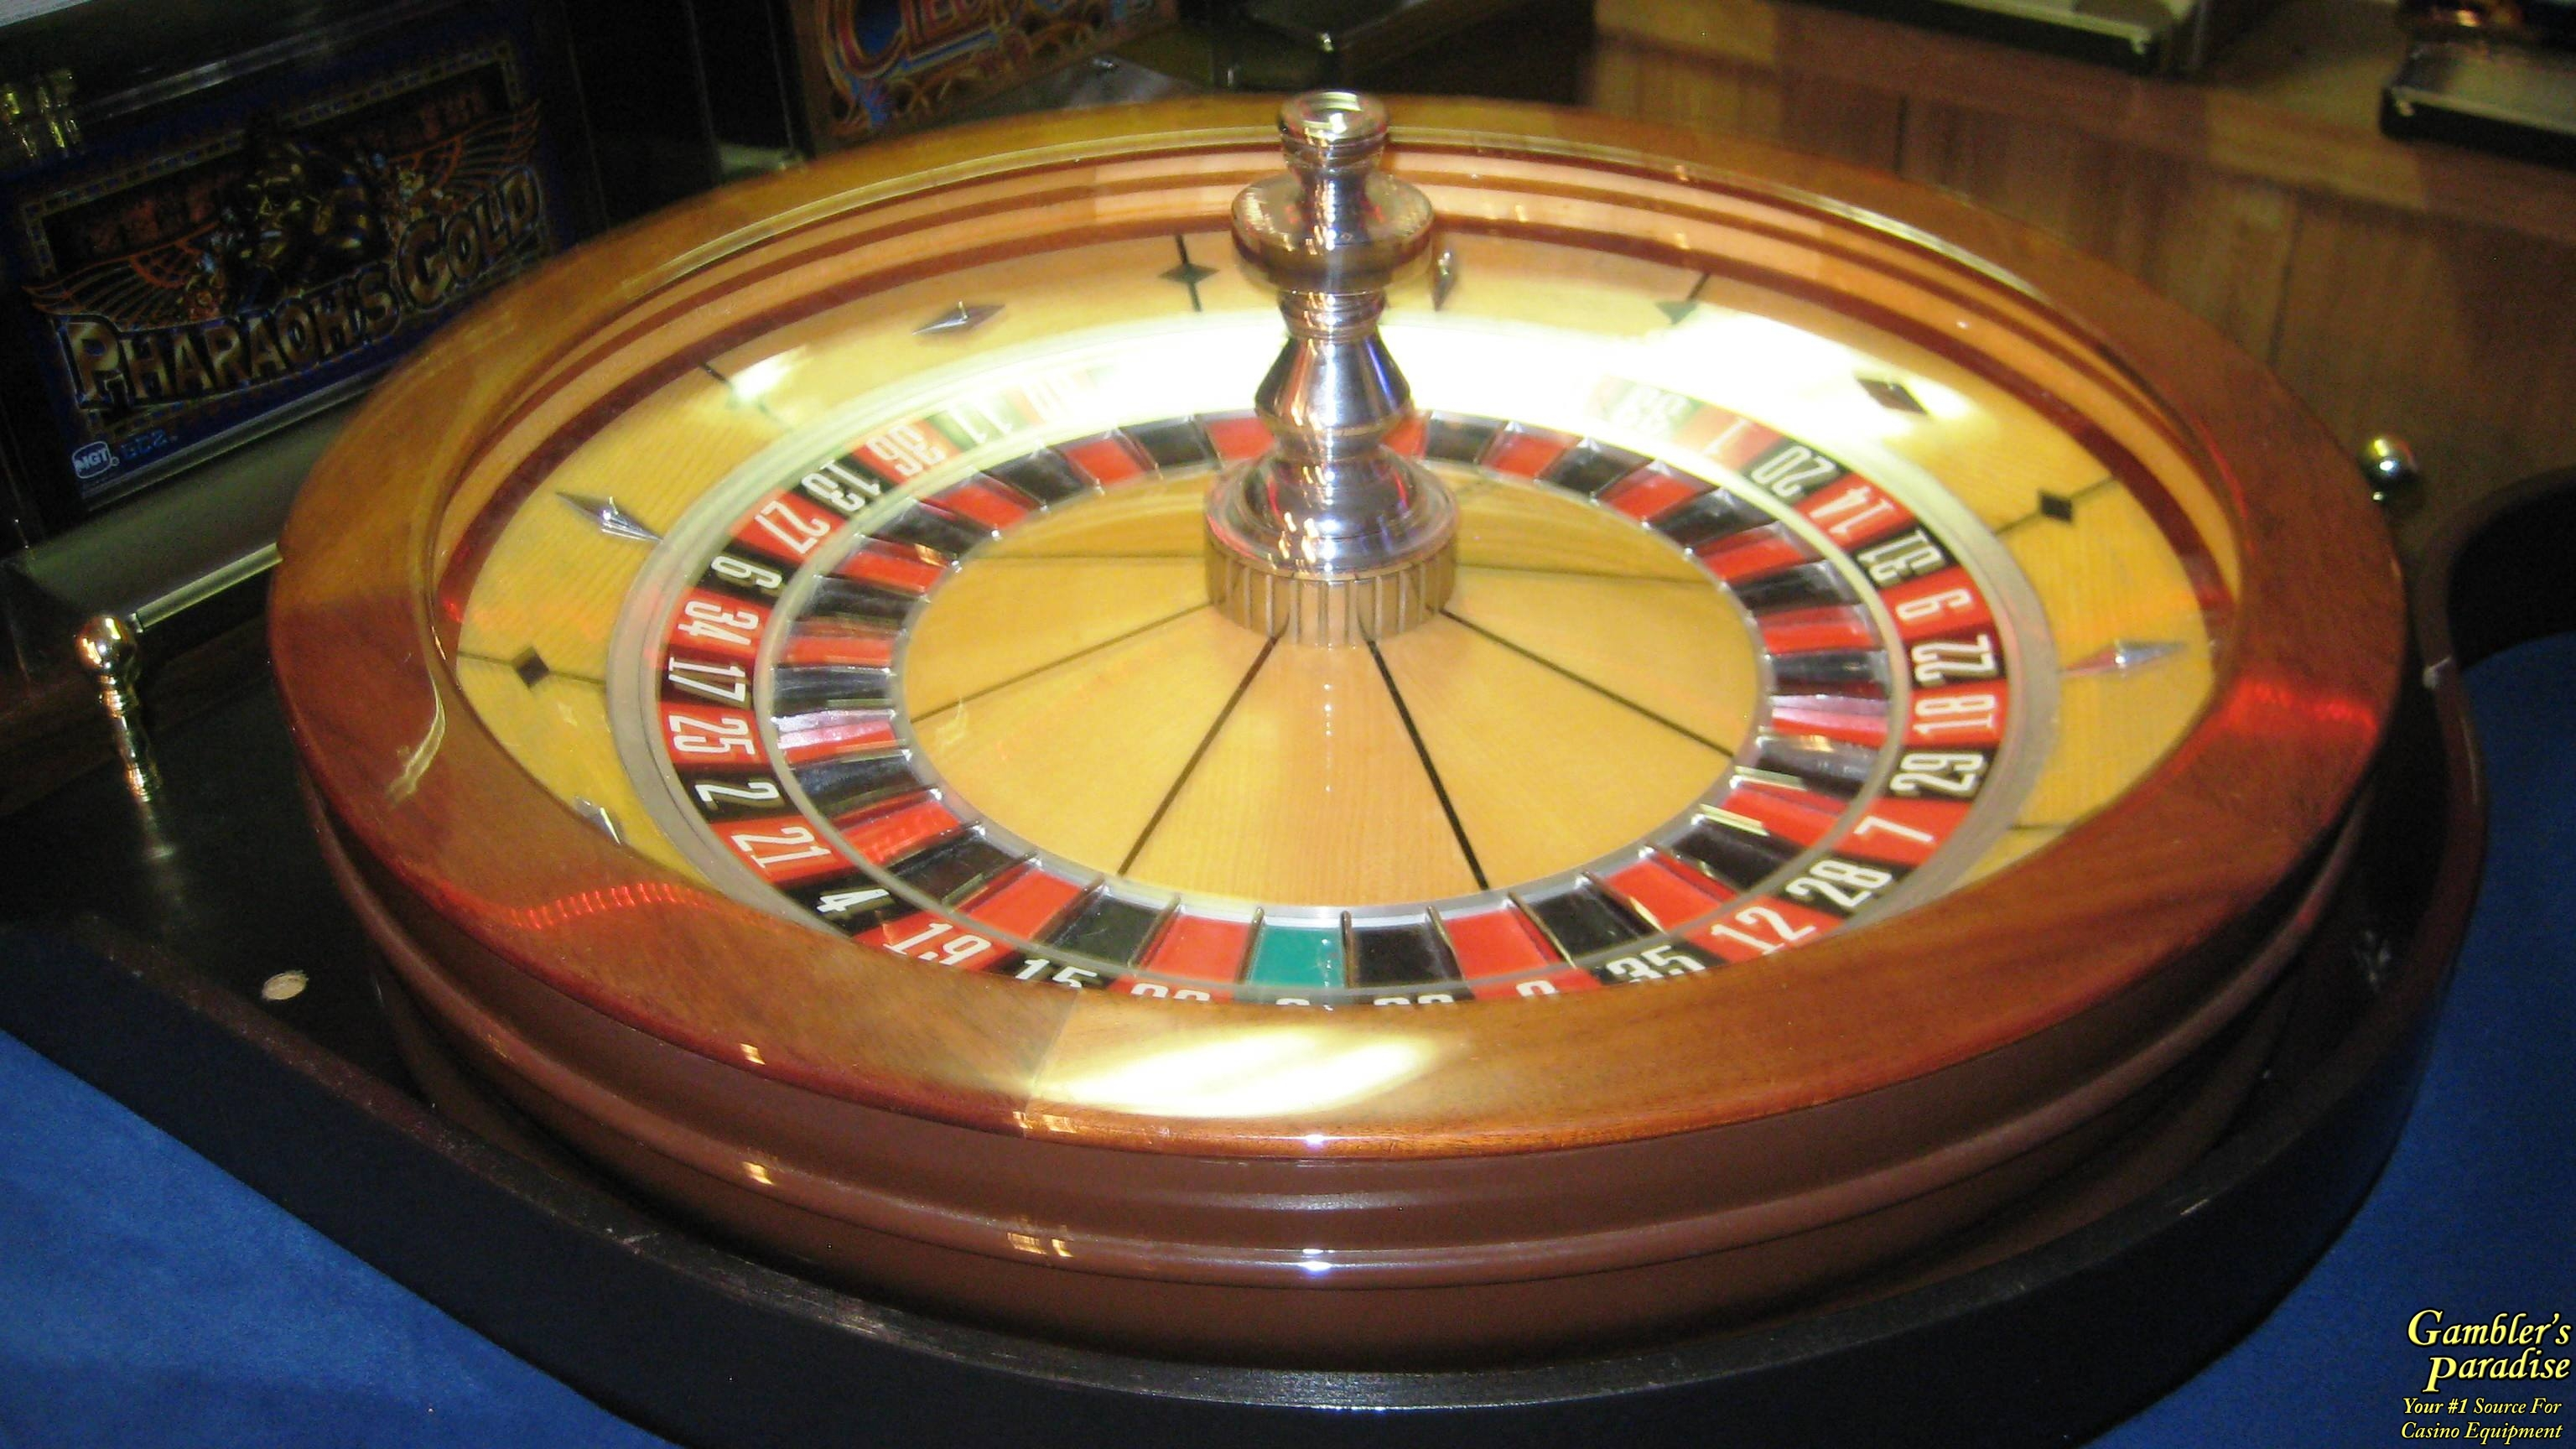 Rigged roulette wheel for sale